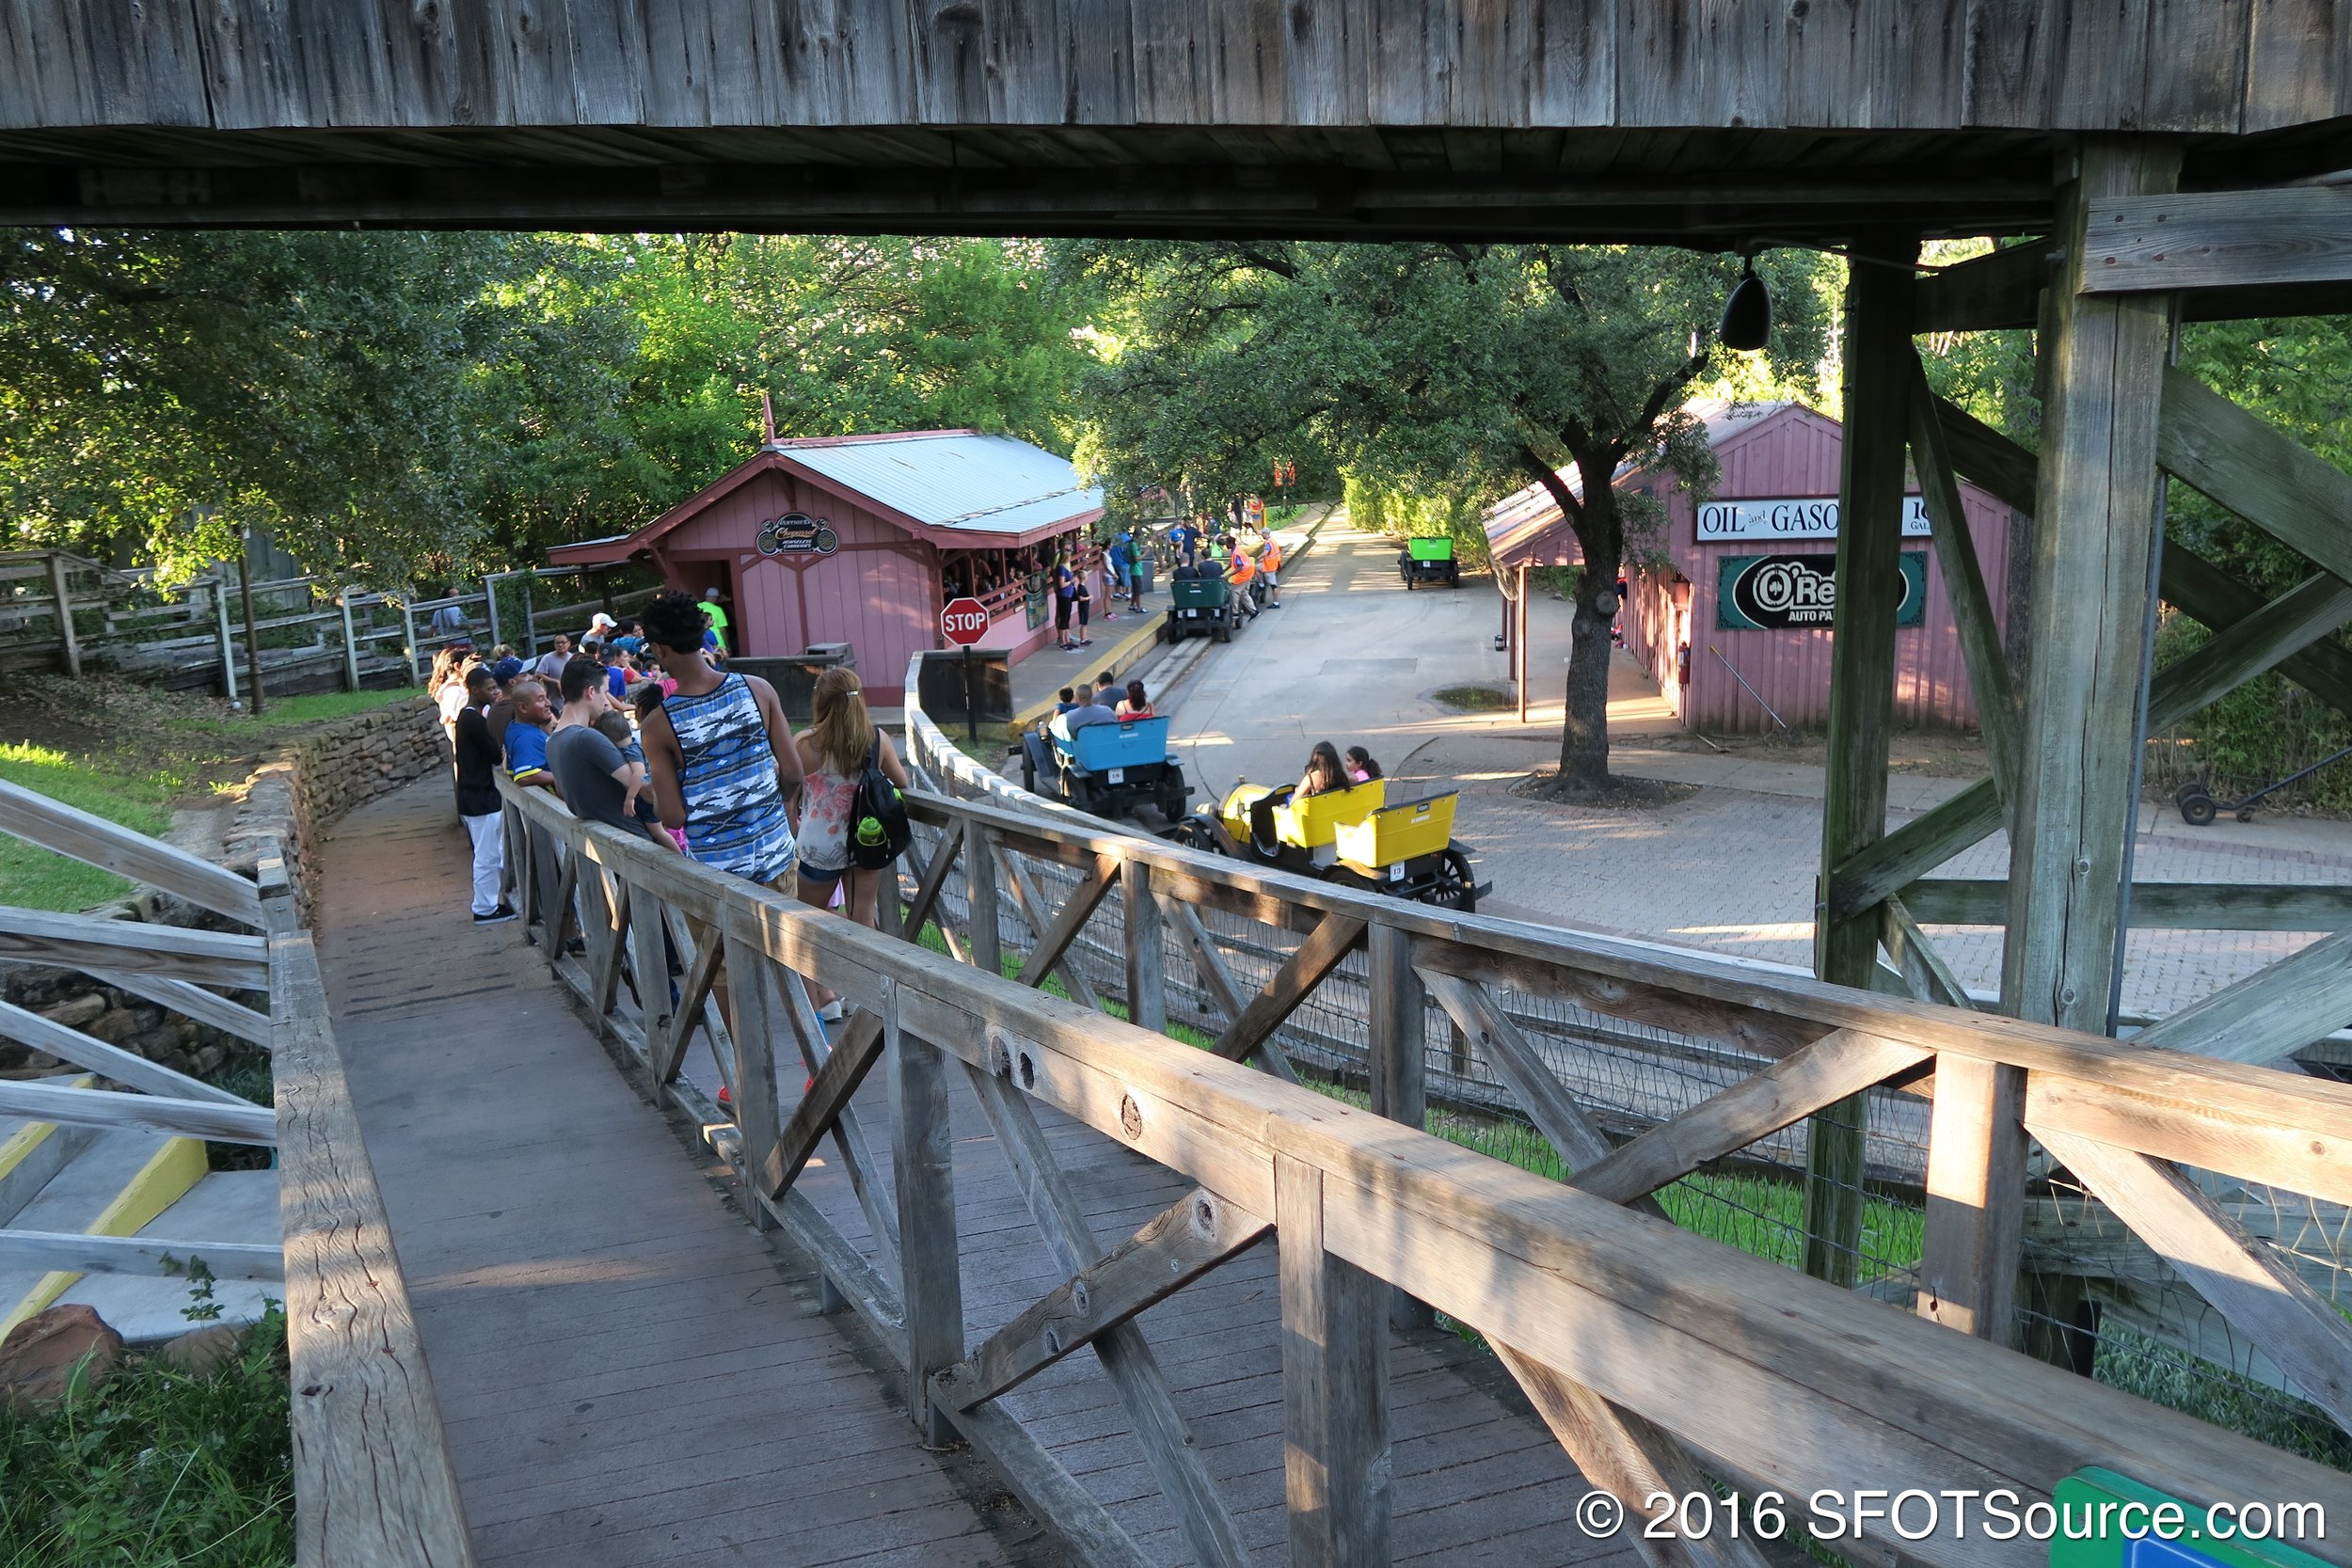 The queue line to the ride.